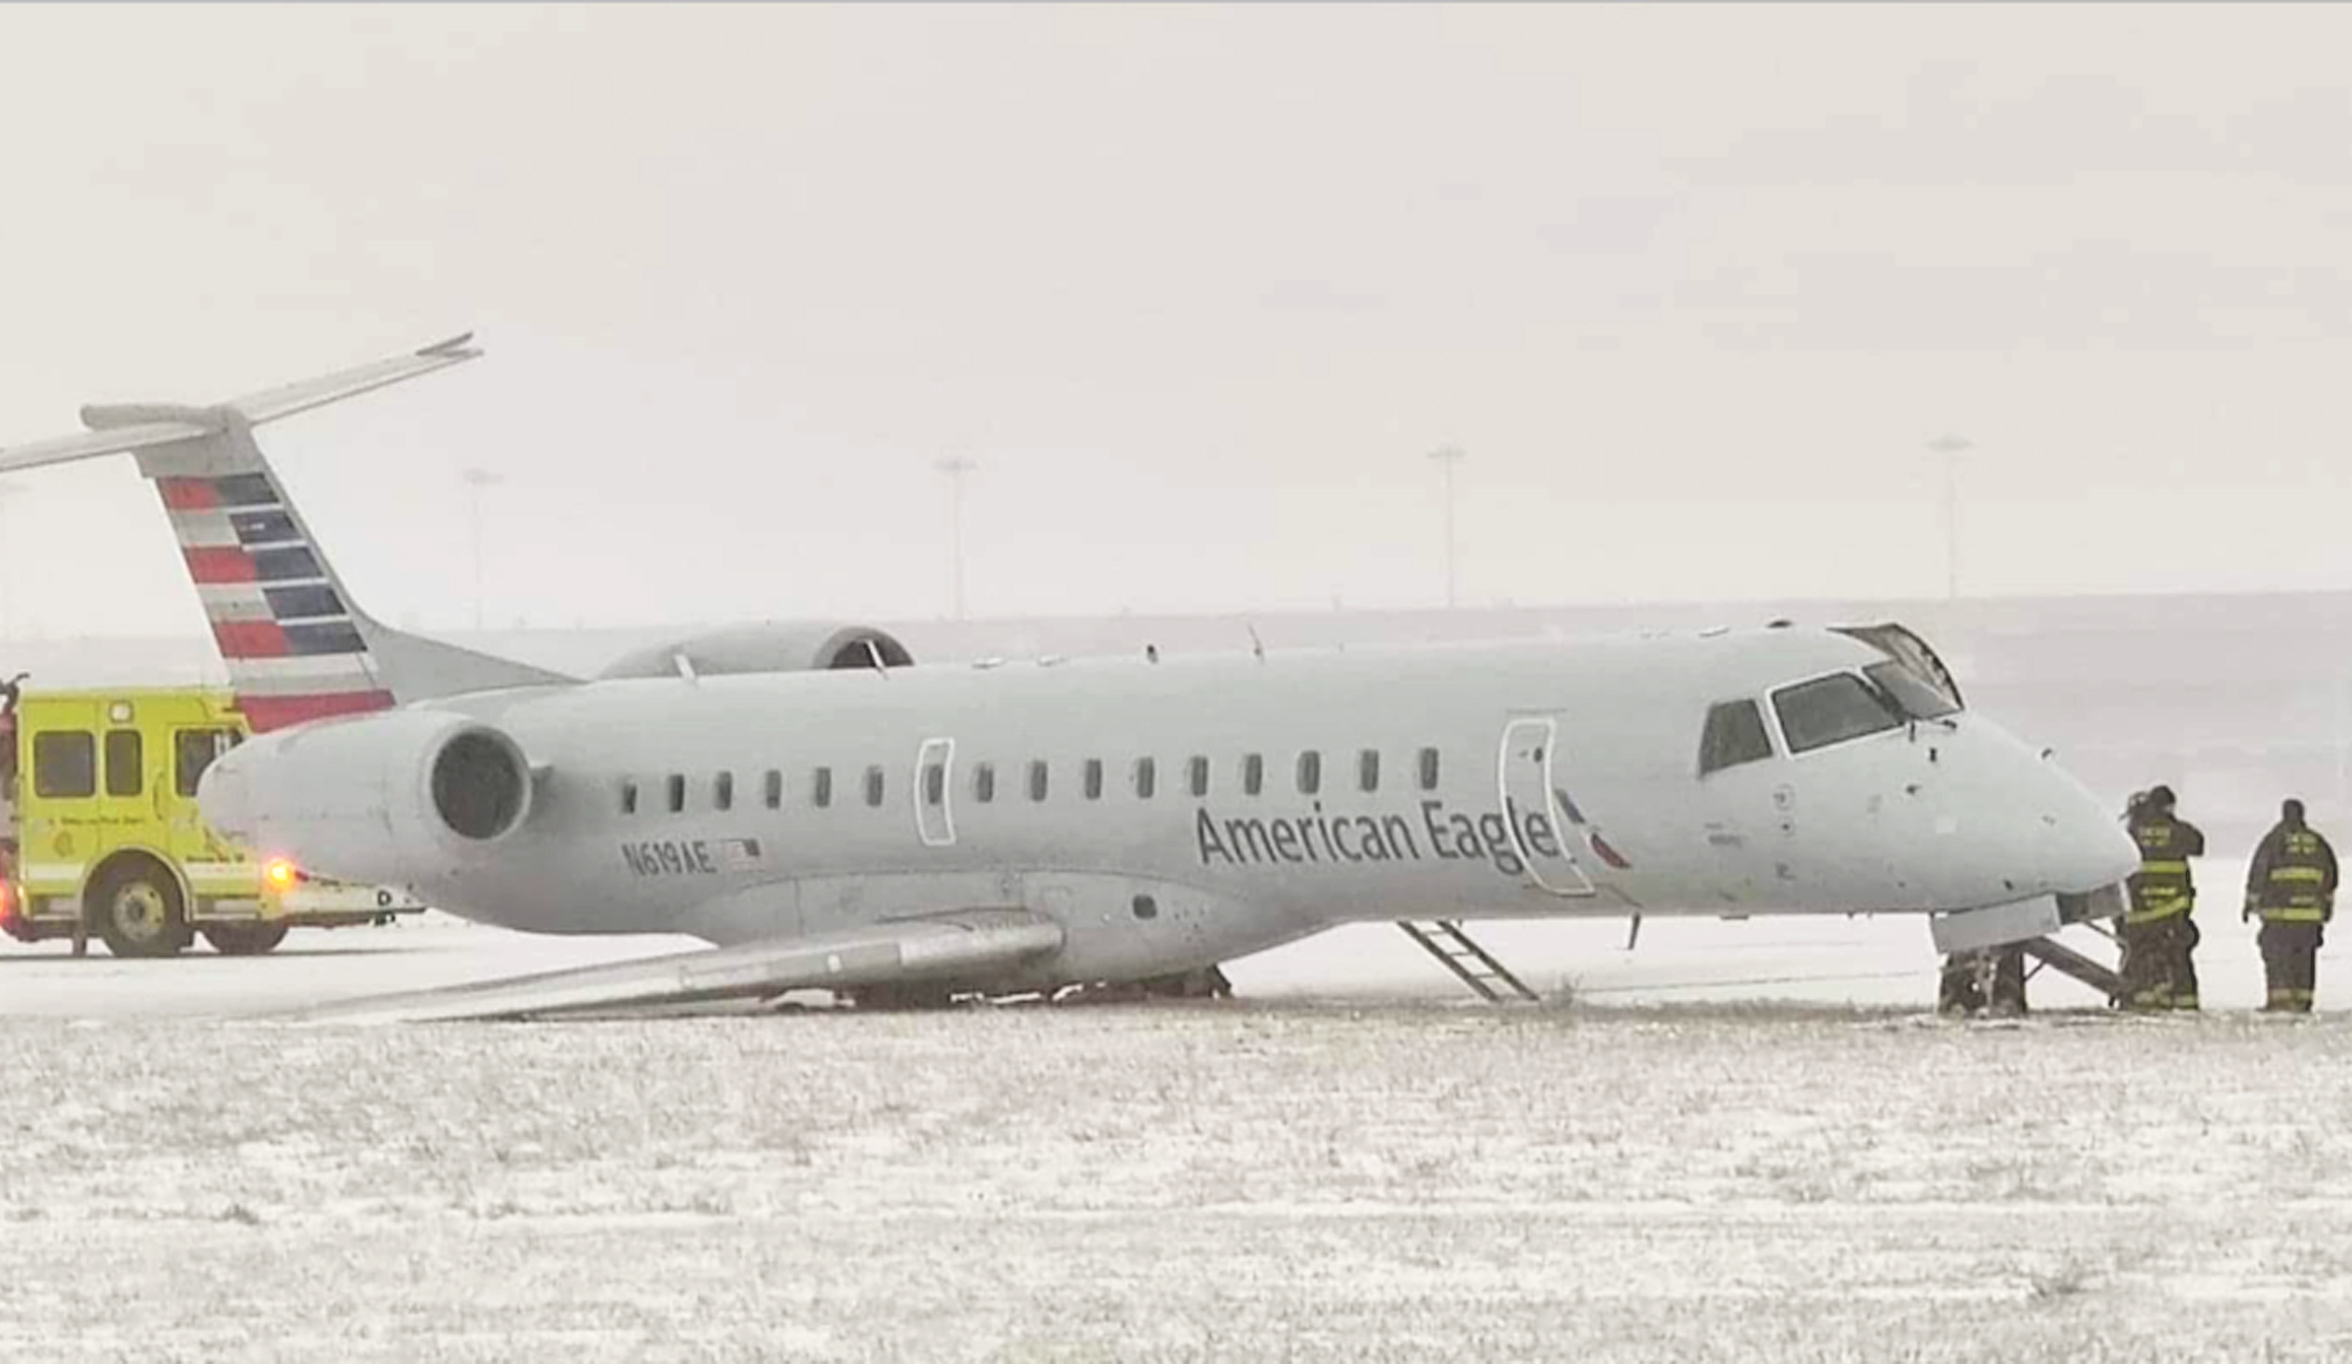 An American Eagle flight slipped off the runway after landing at O'Hare Airport Monday morning.